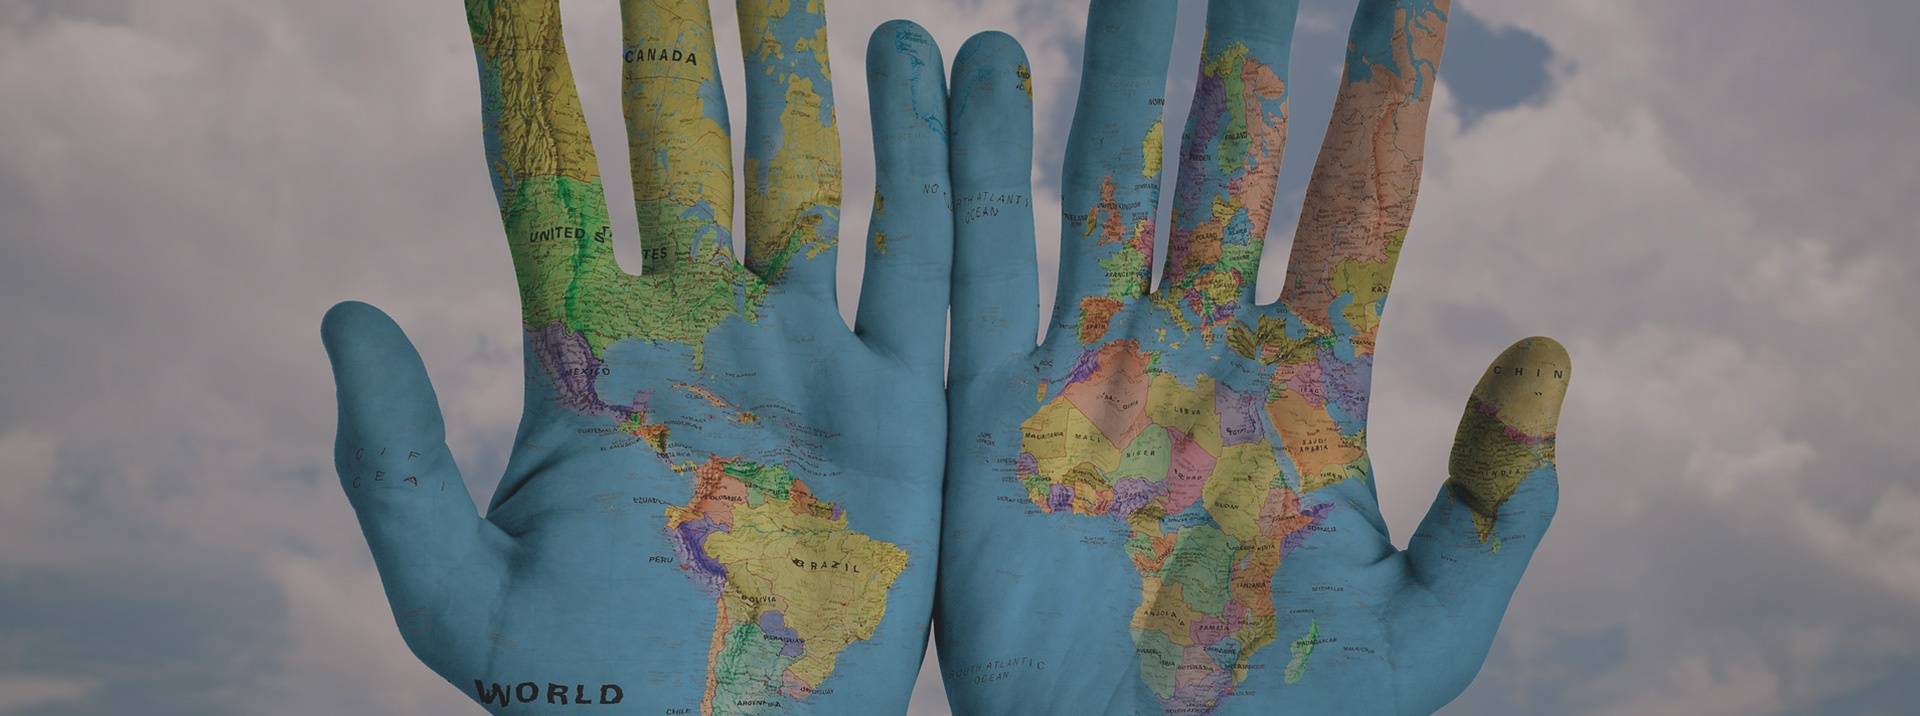 Find your internship around the world